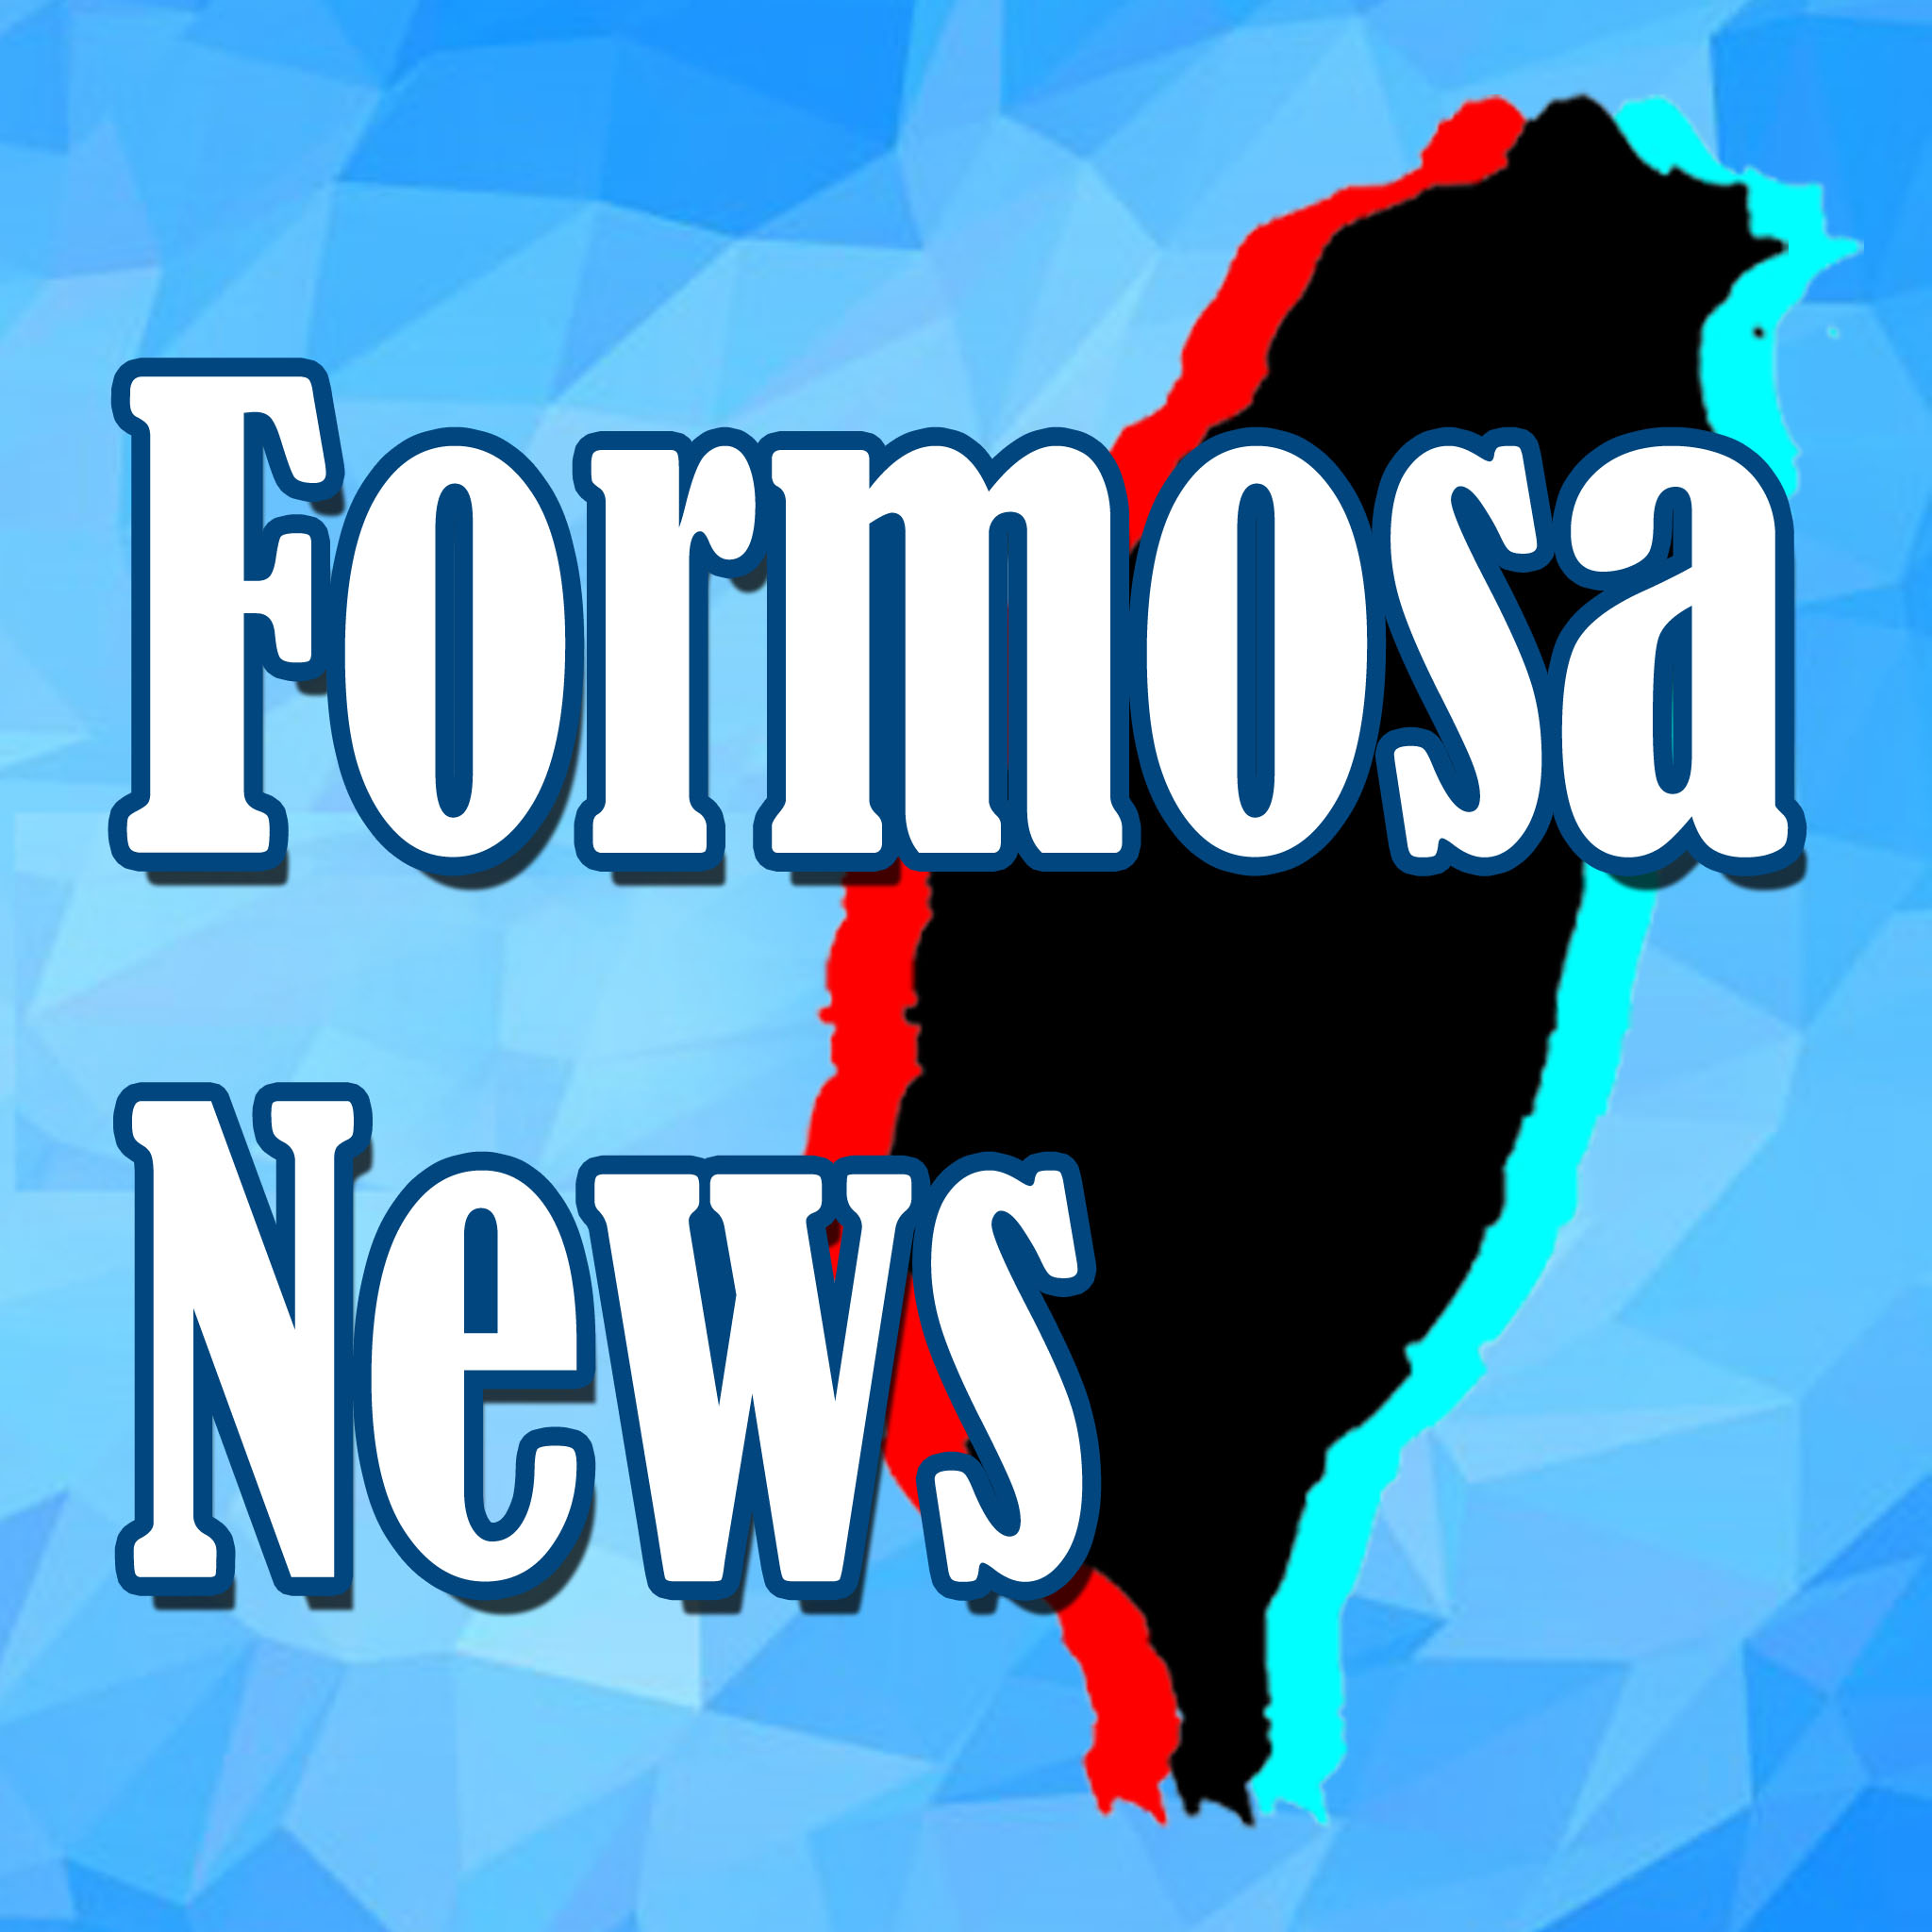 Apr 5, 2021 Formosa Headline News